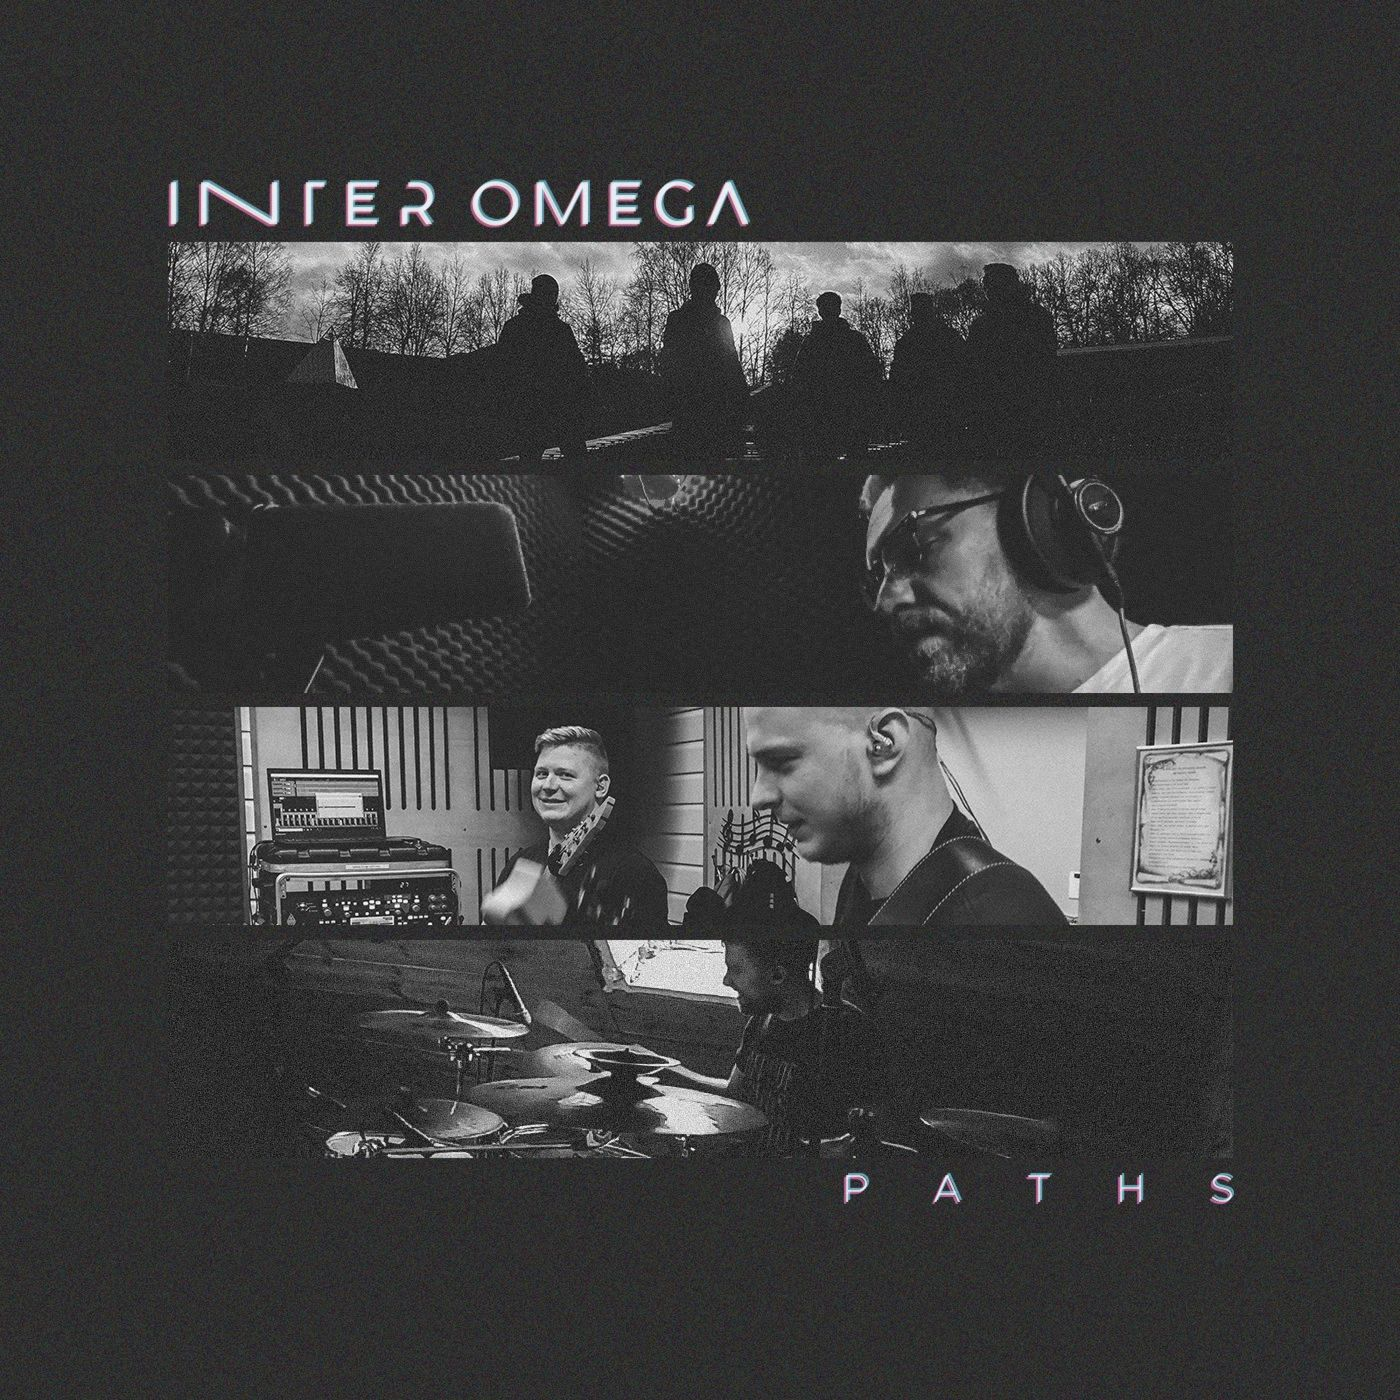 Inter Omega - Paths [single] (2020)